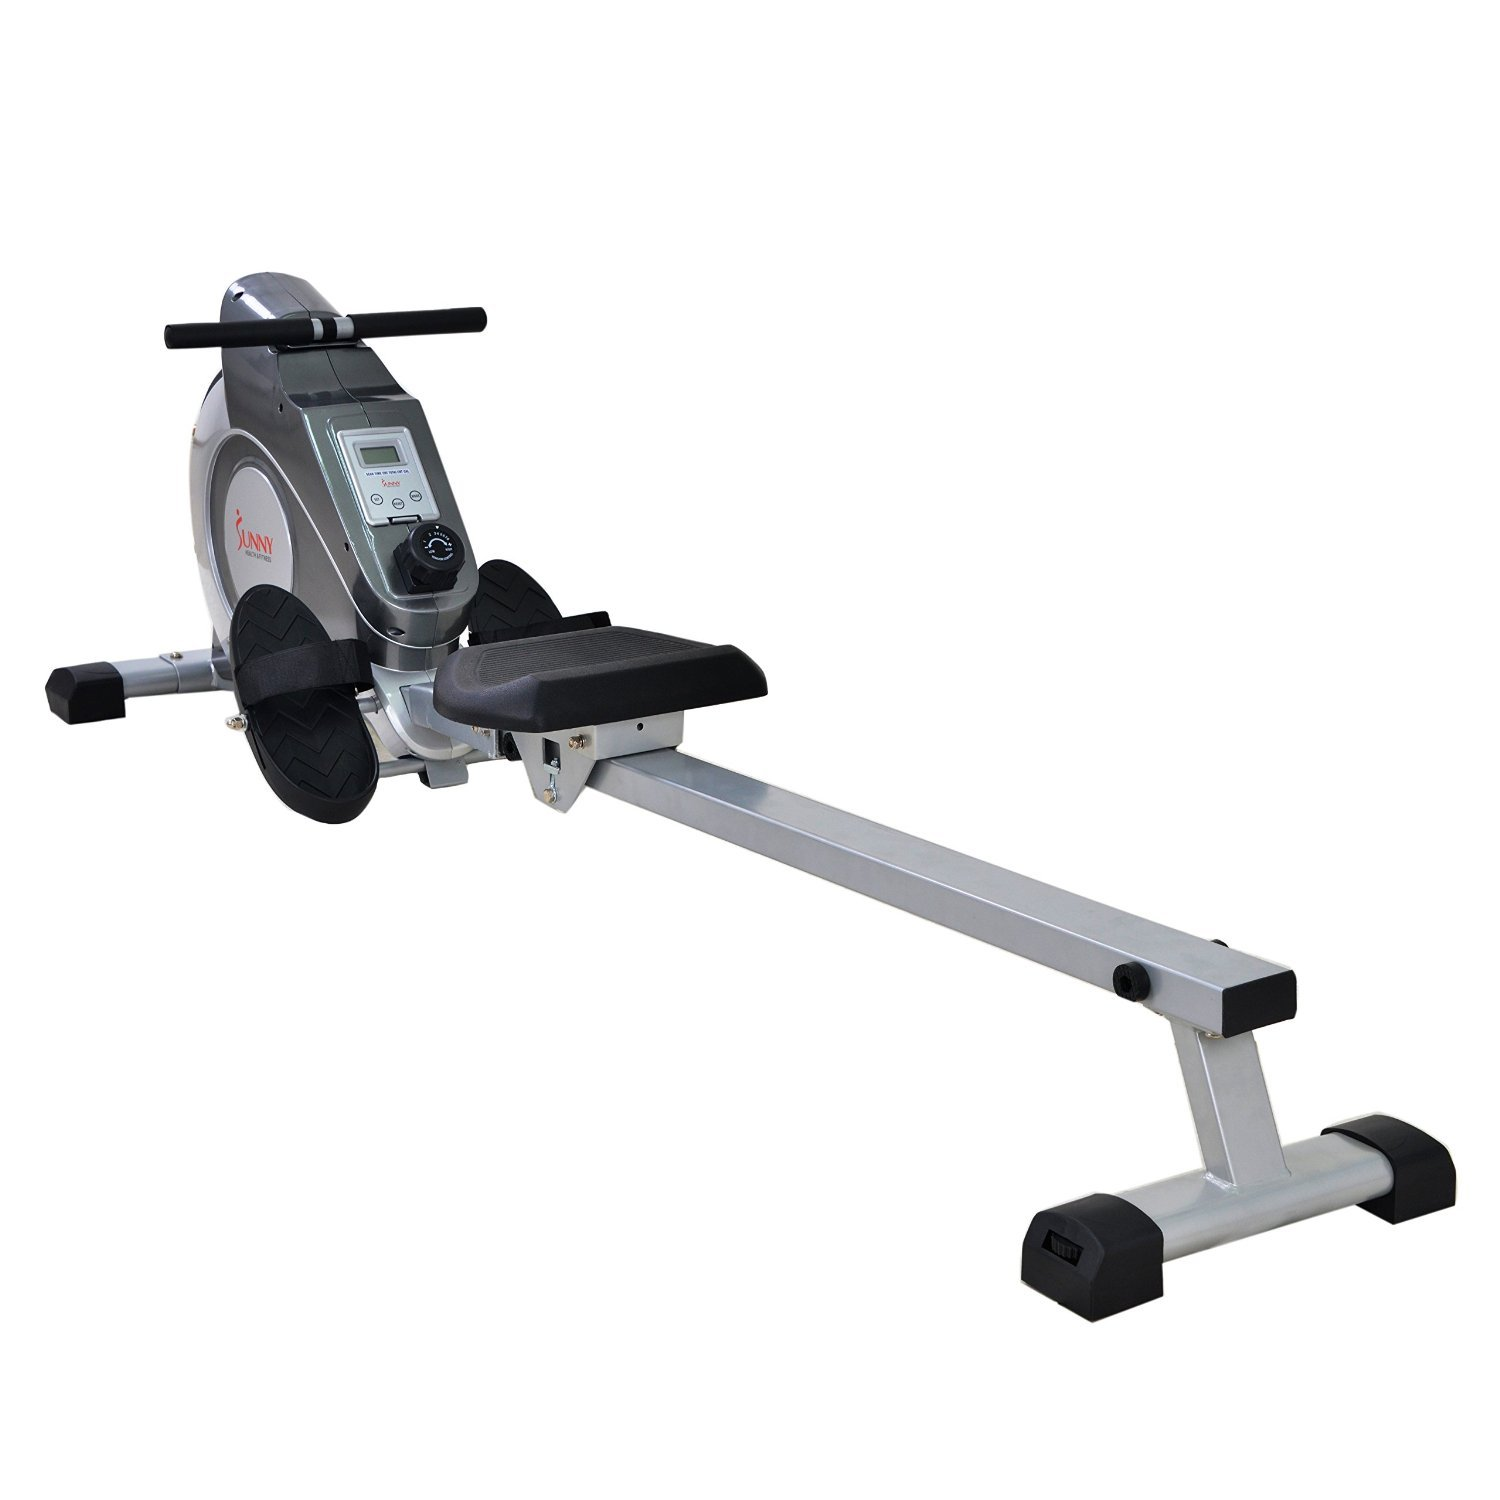 Sunny Health & Fitness Magnetic Rowing Machine with LCD Monitor by SF-RW5515 by Sunny Health & Fitness (Image #2)